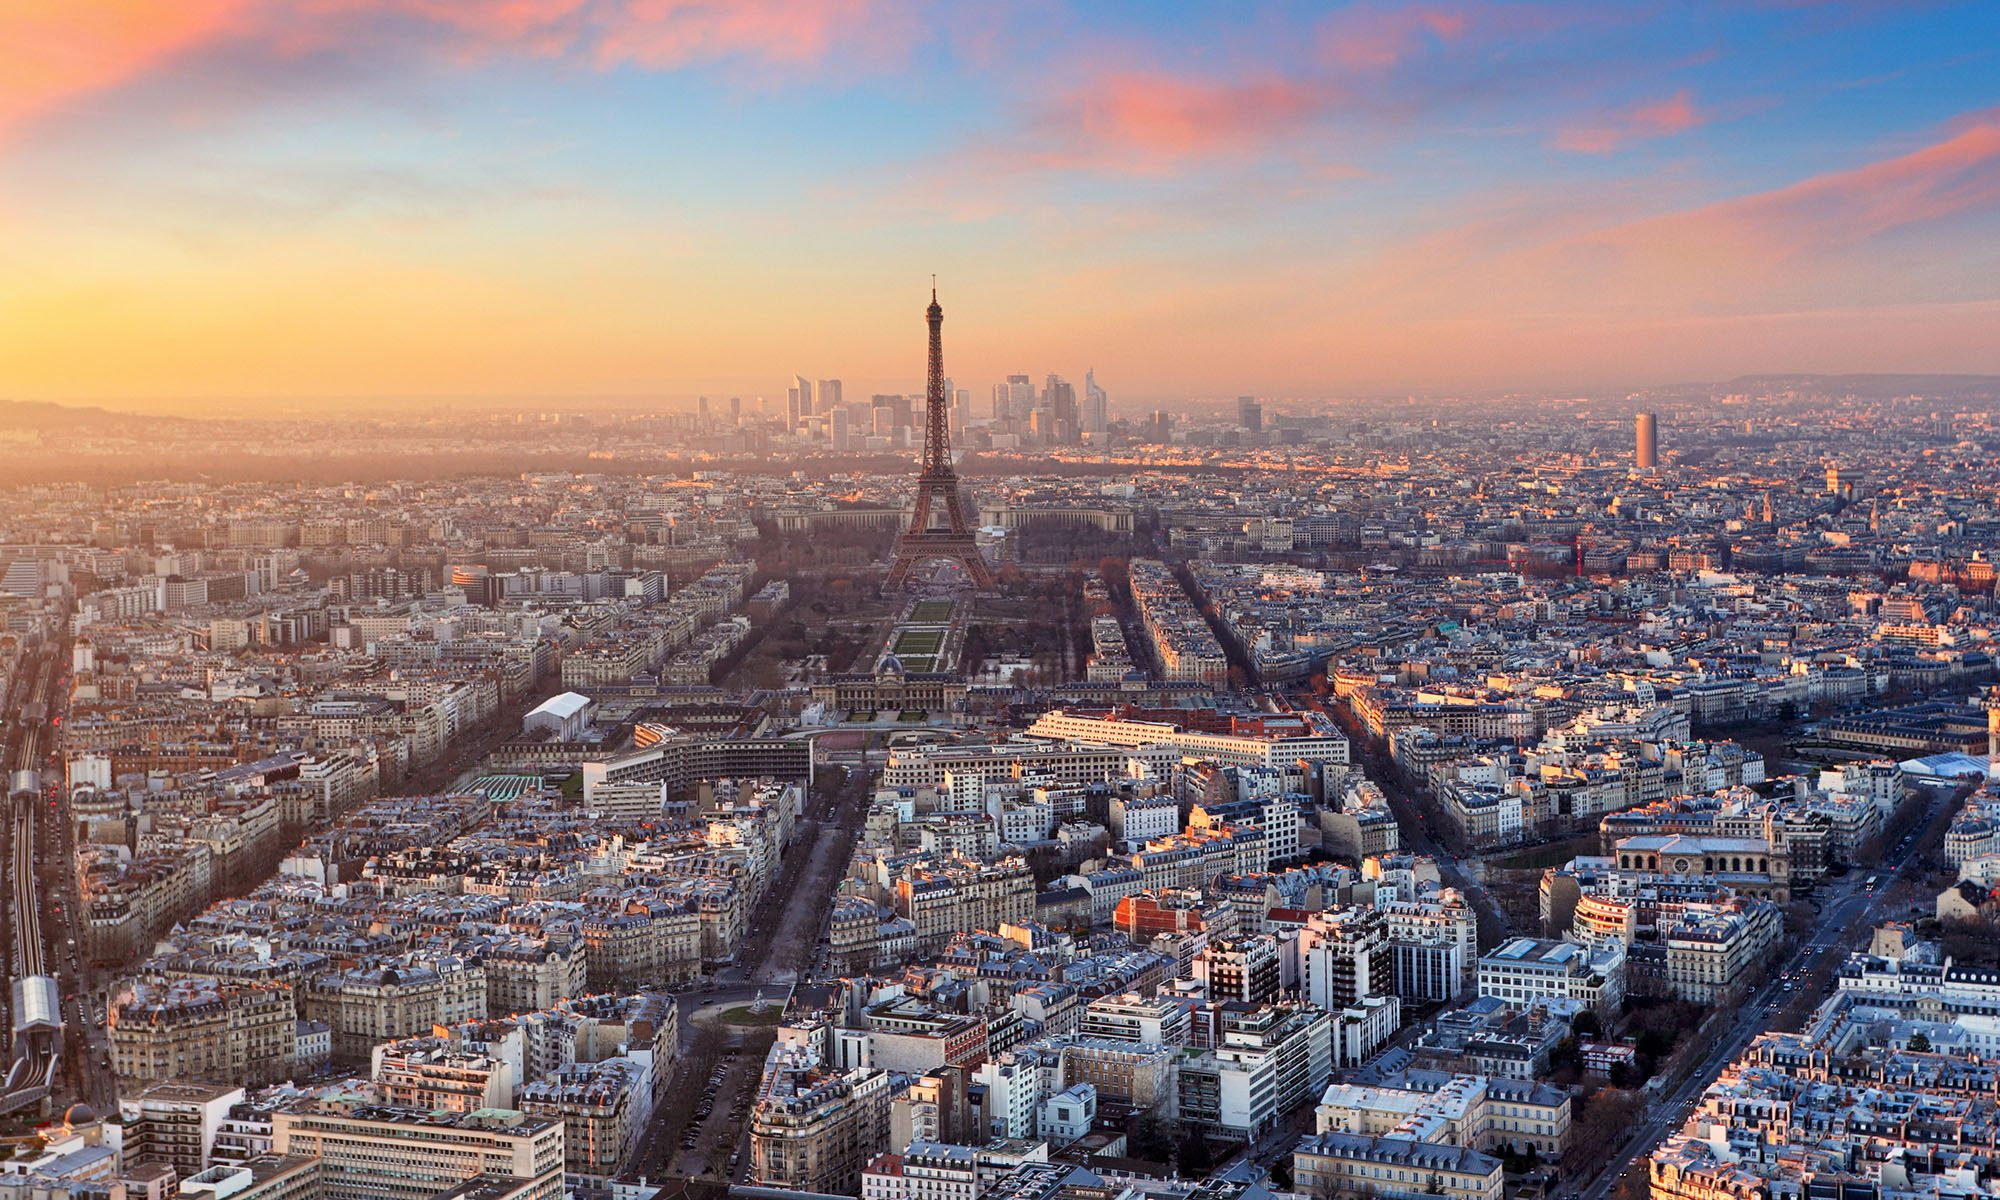 Local Reporting: Paris as a Case Study